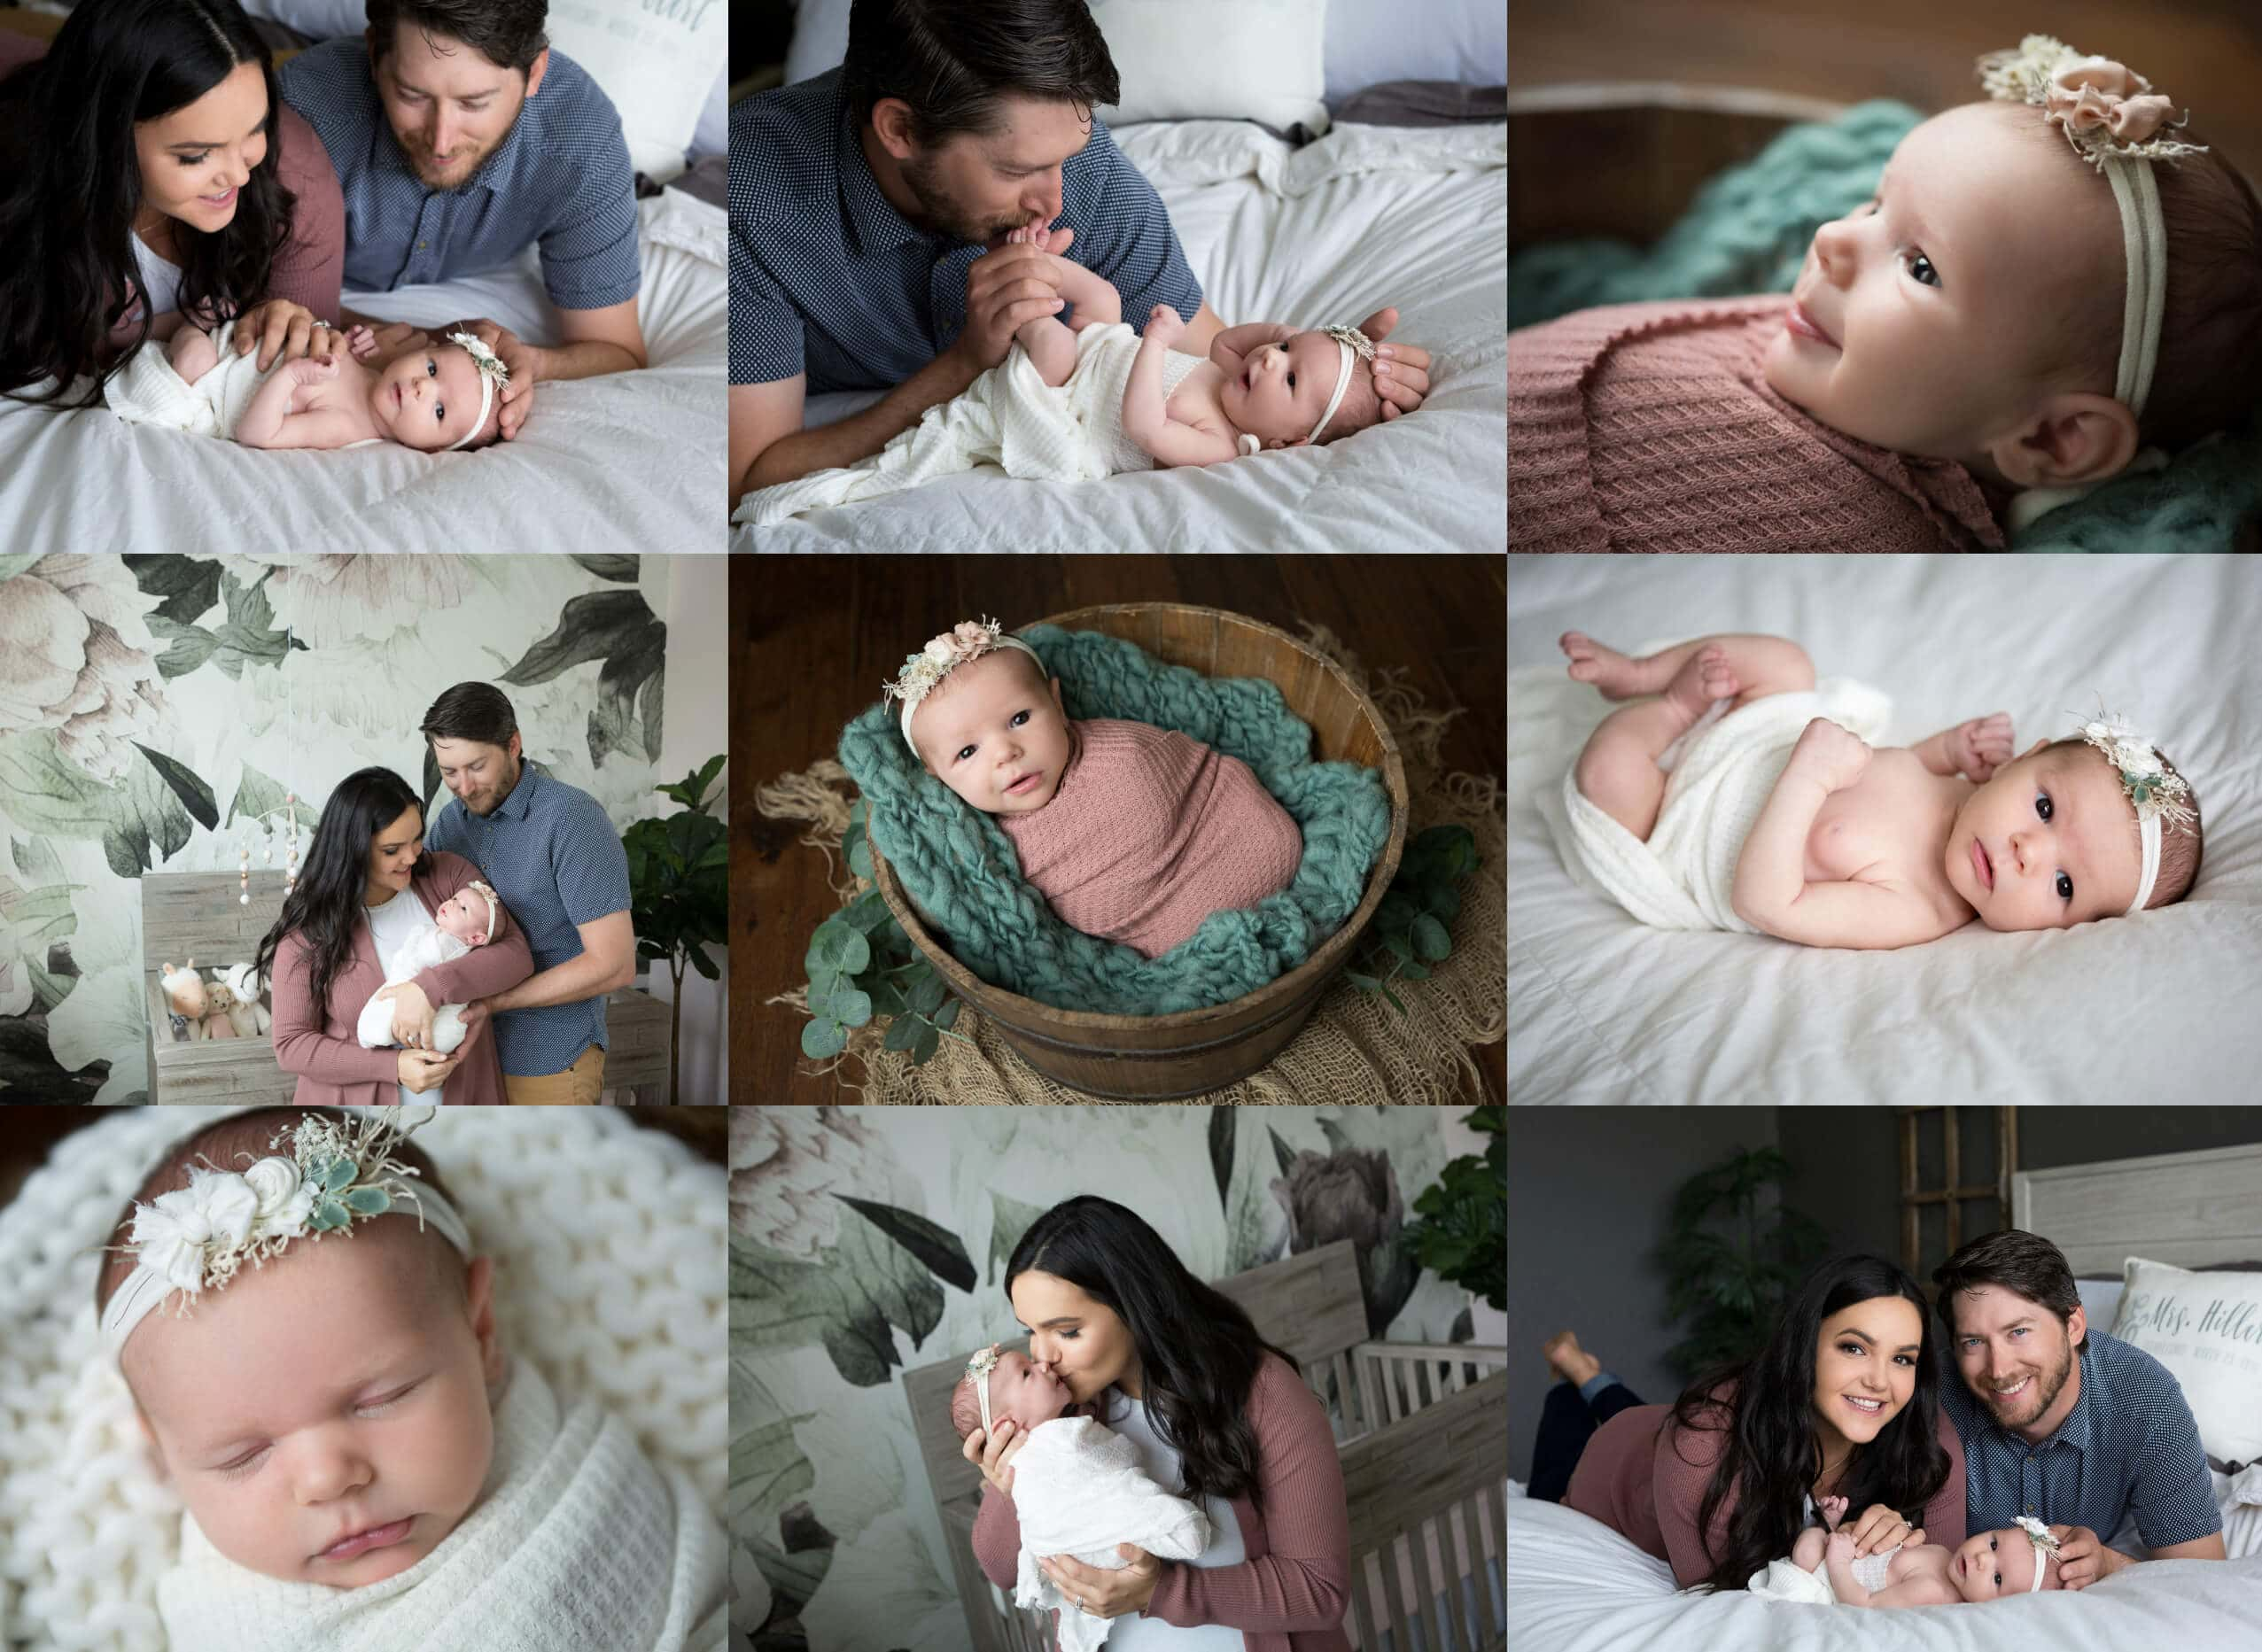 newborn baby girl at home photo session with parents